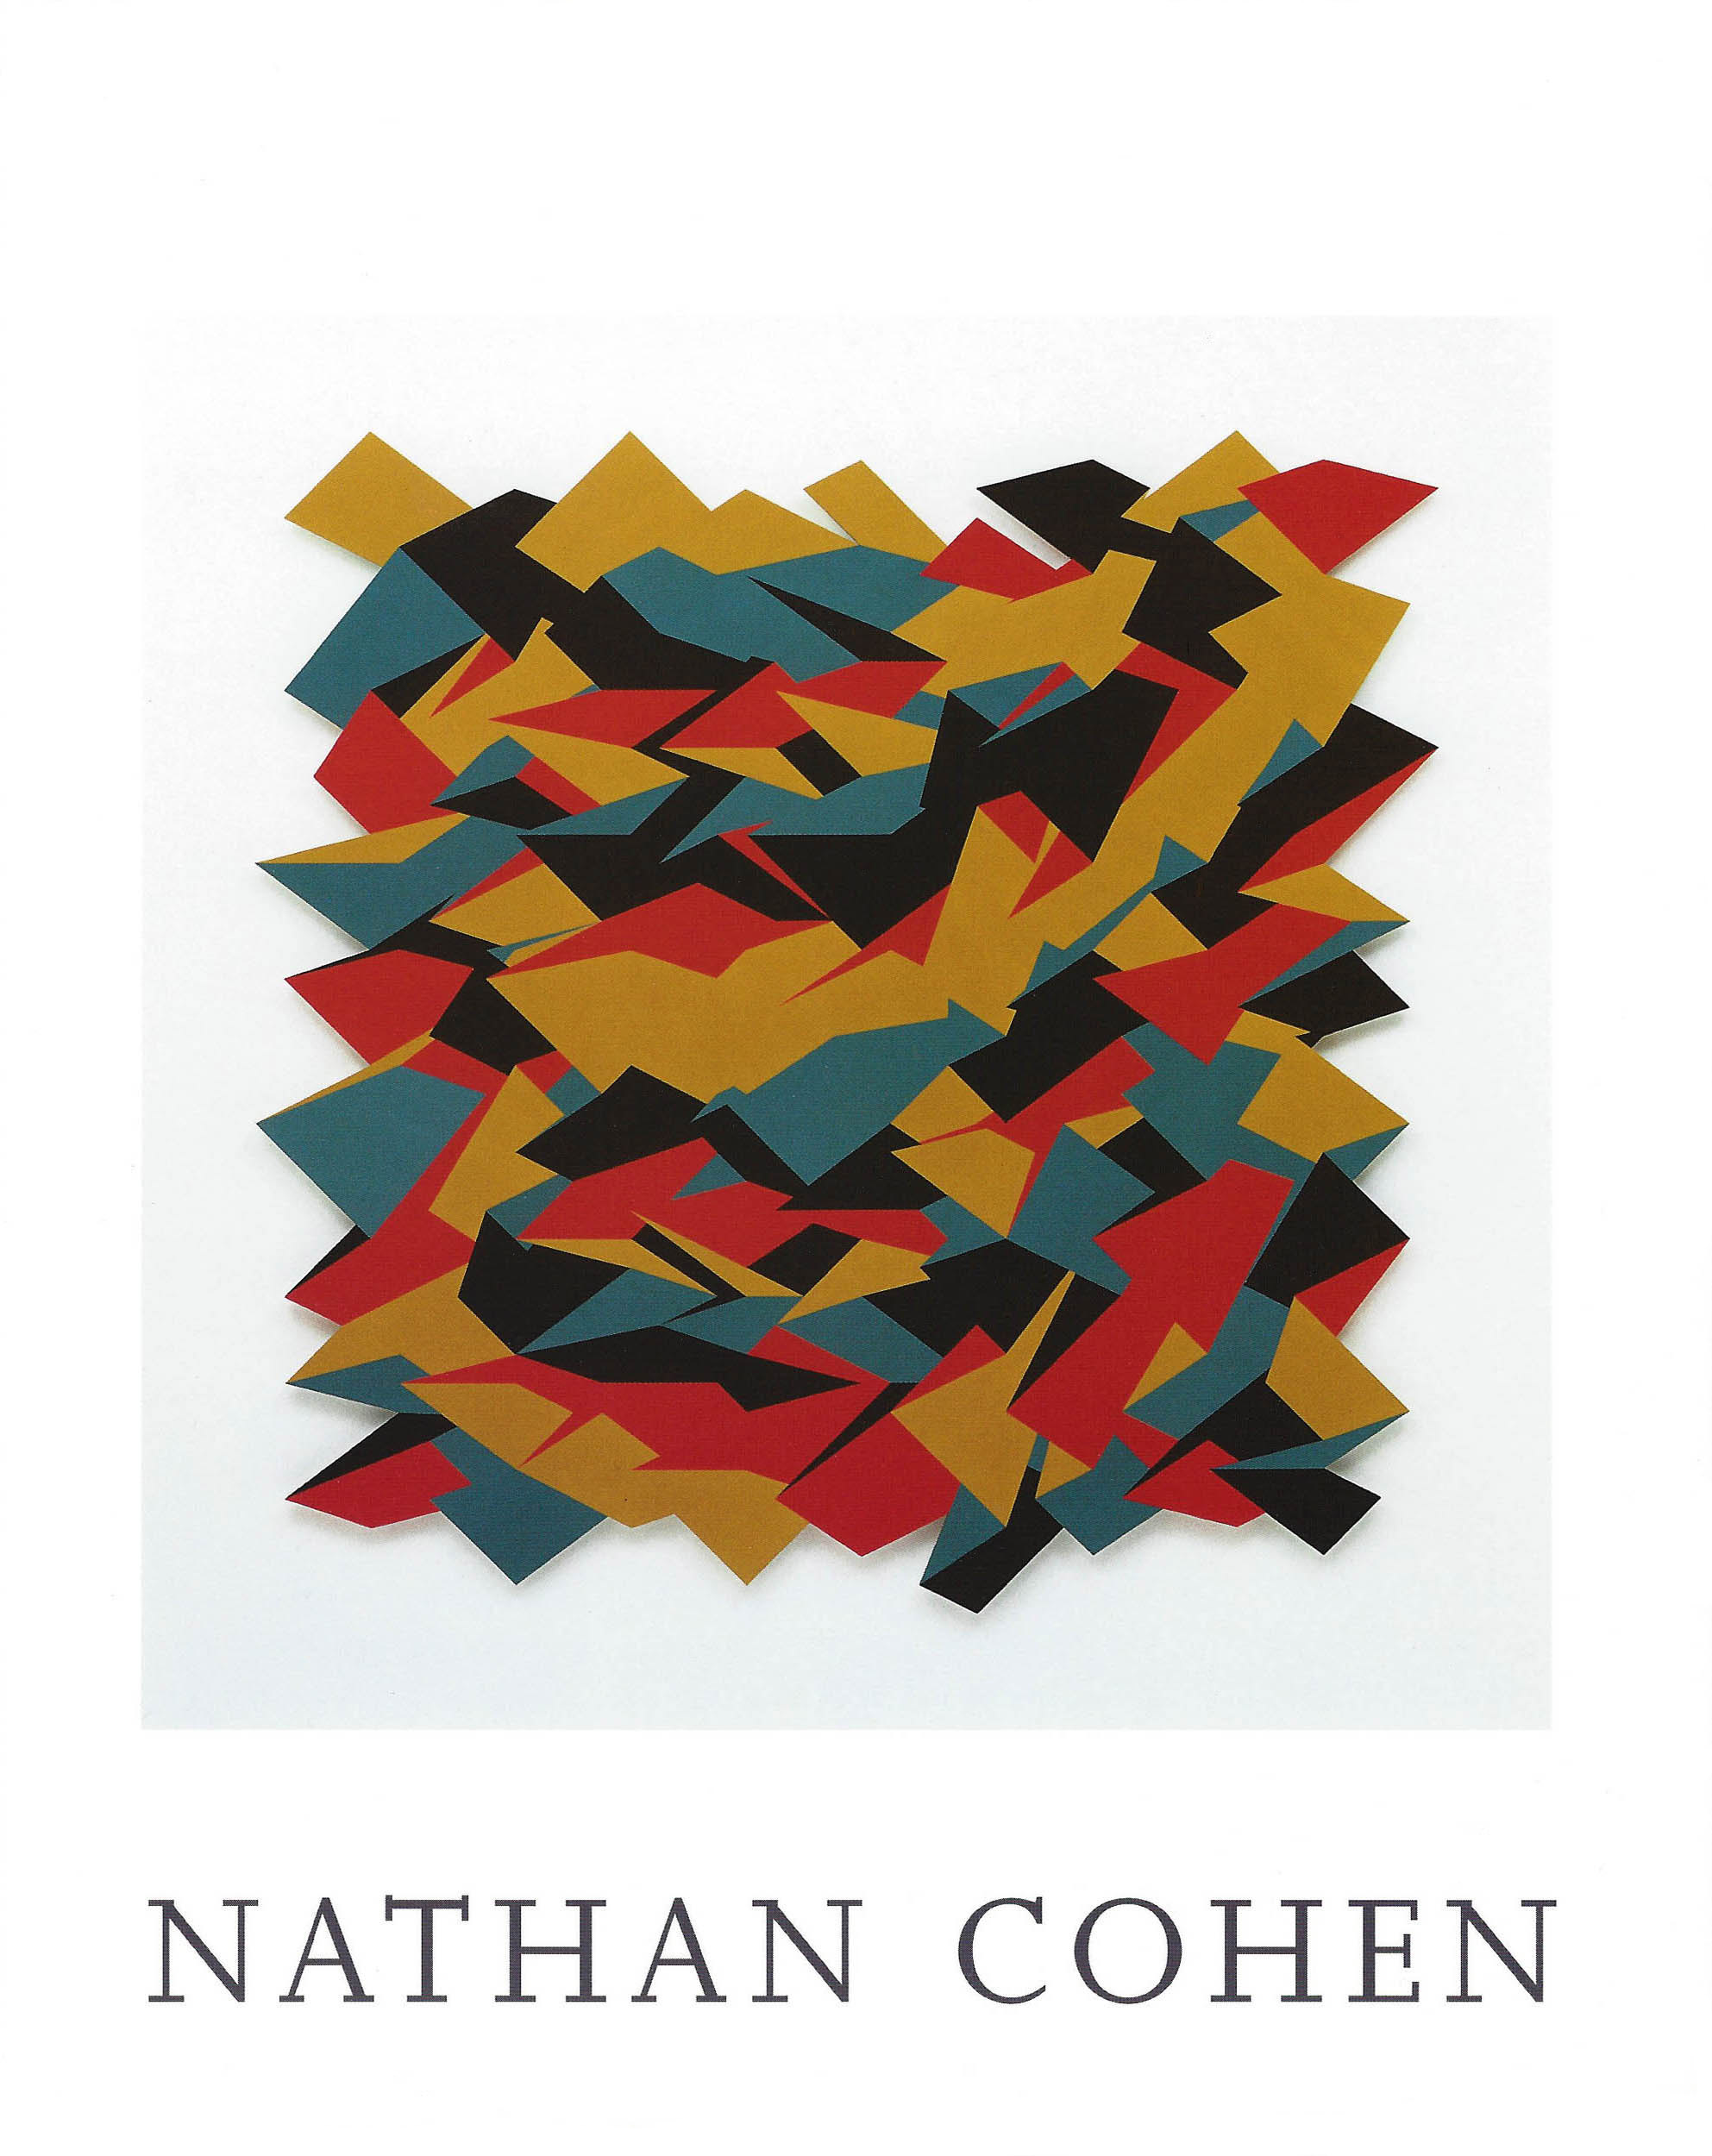 NATHAN COHEN ANNELY JUDA 2001 CATALOGUE 1.jpg